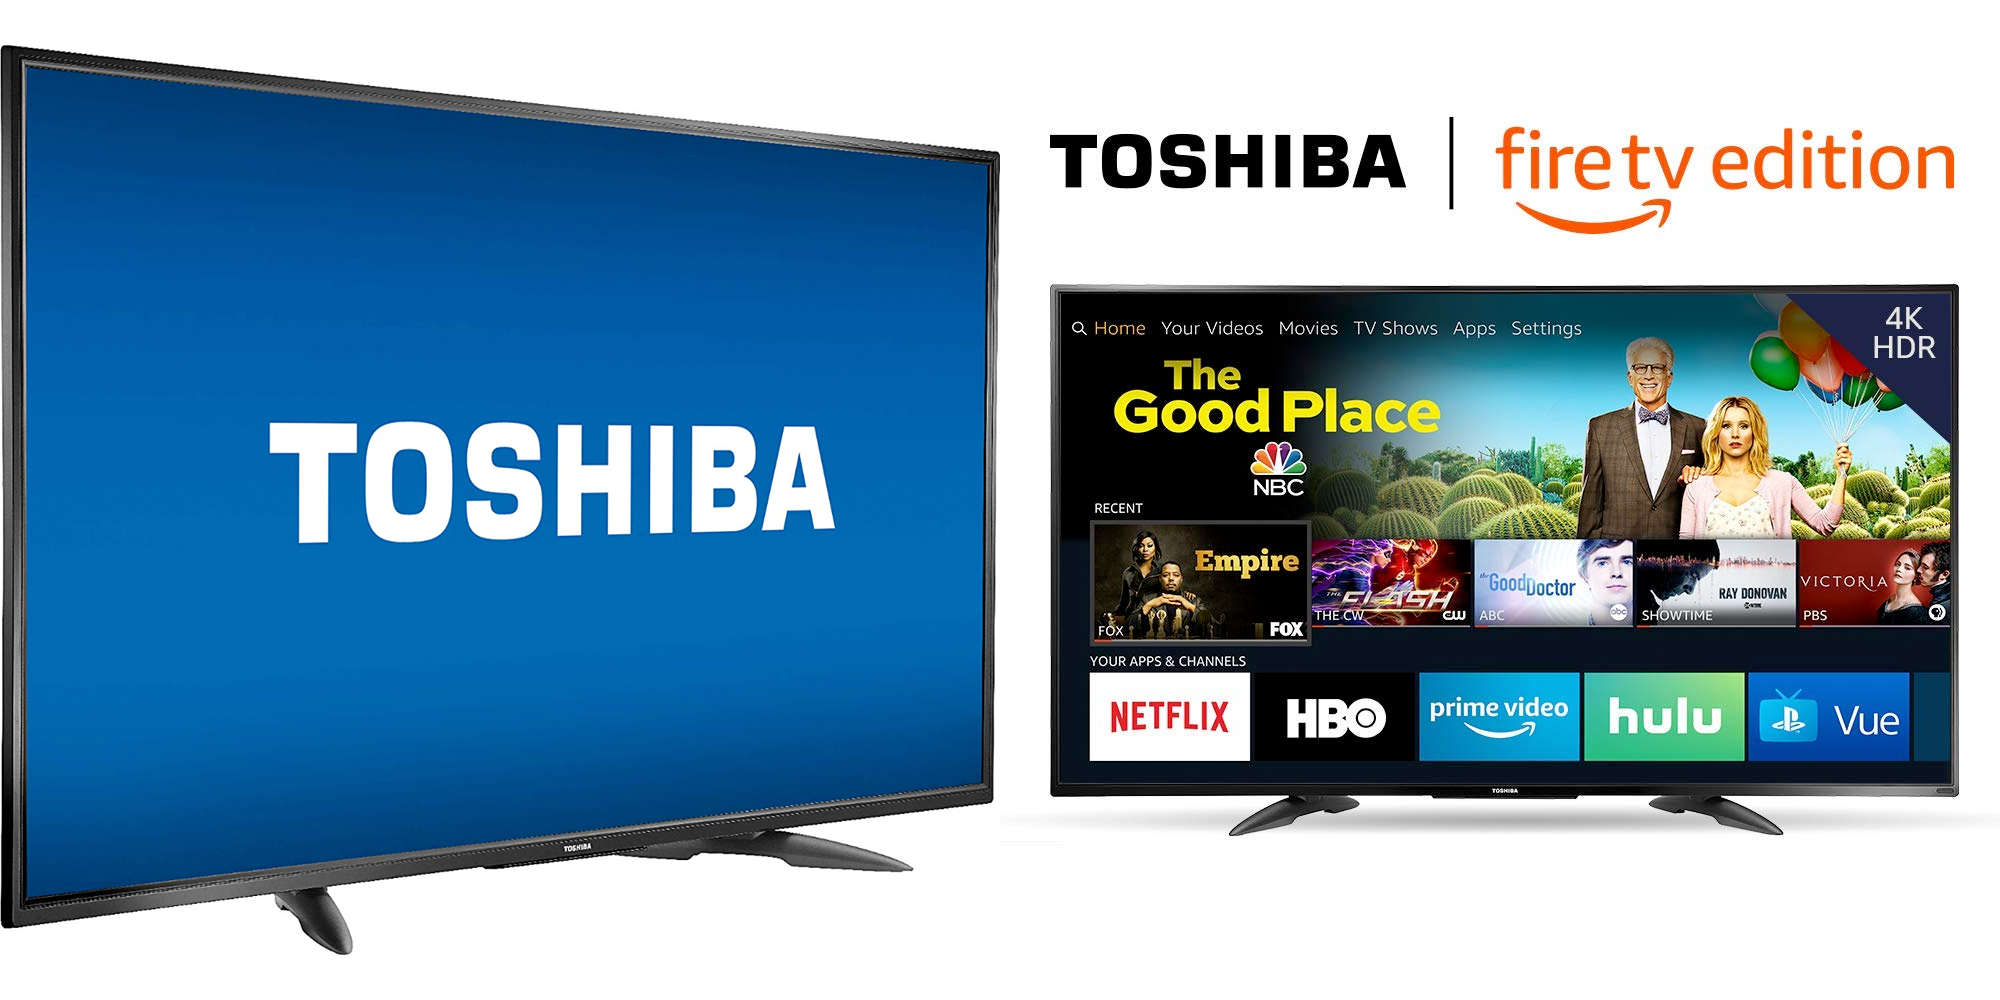 Toshiba Fire TV Edition Dolby Vision